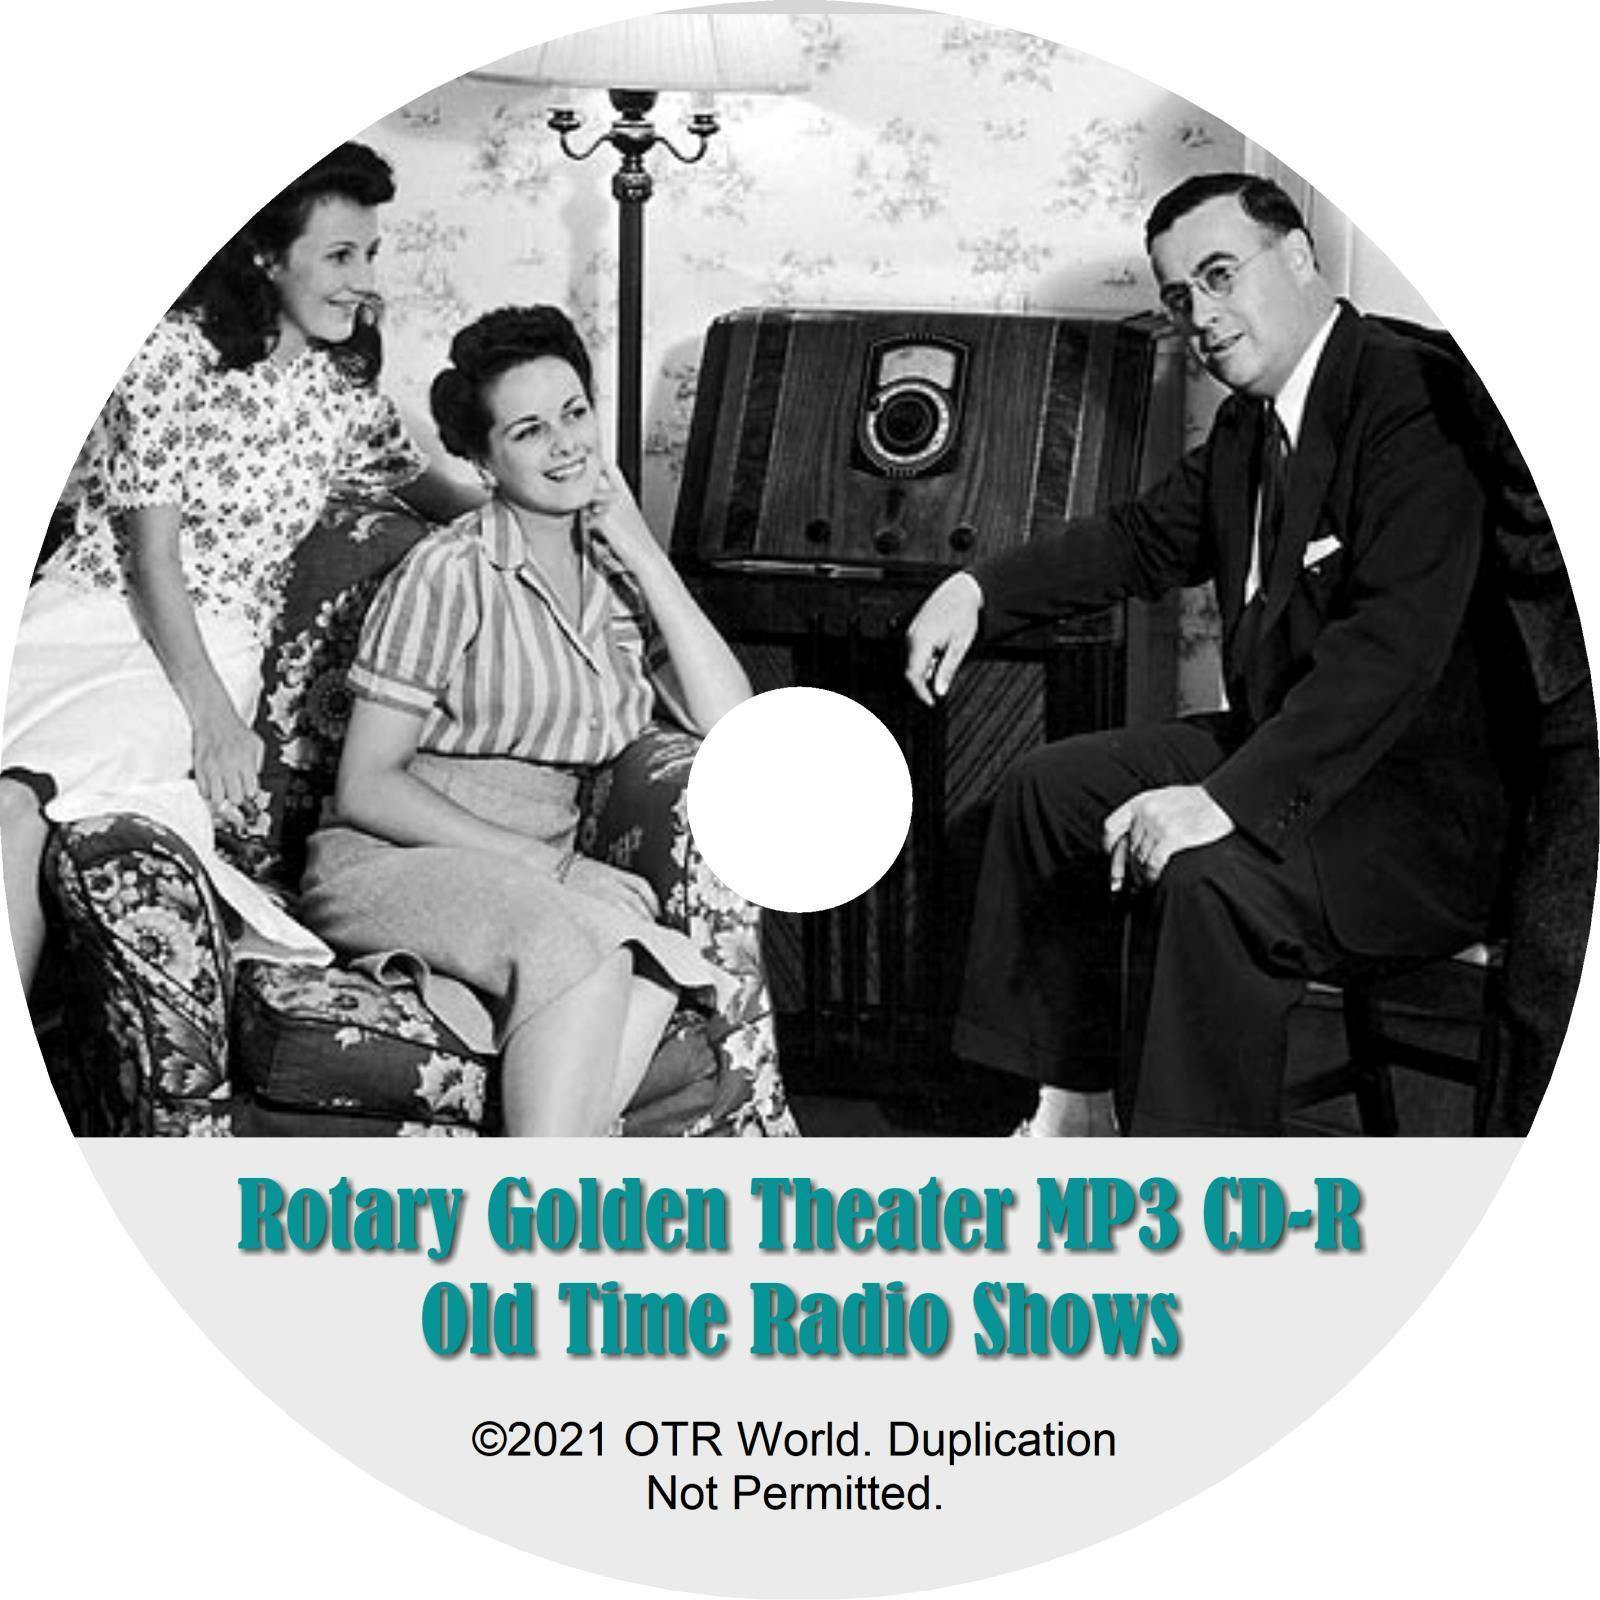 Rotary Golden Theater OTR OTRS Old Time Radio Shows MP3 On CD-R 13 Episodes - OTR World